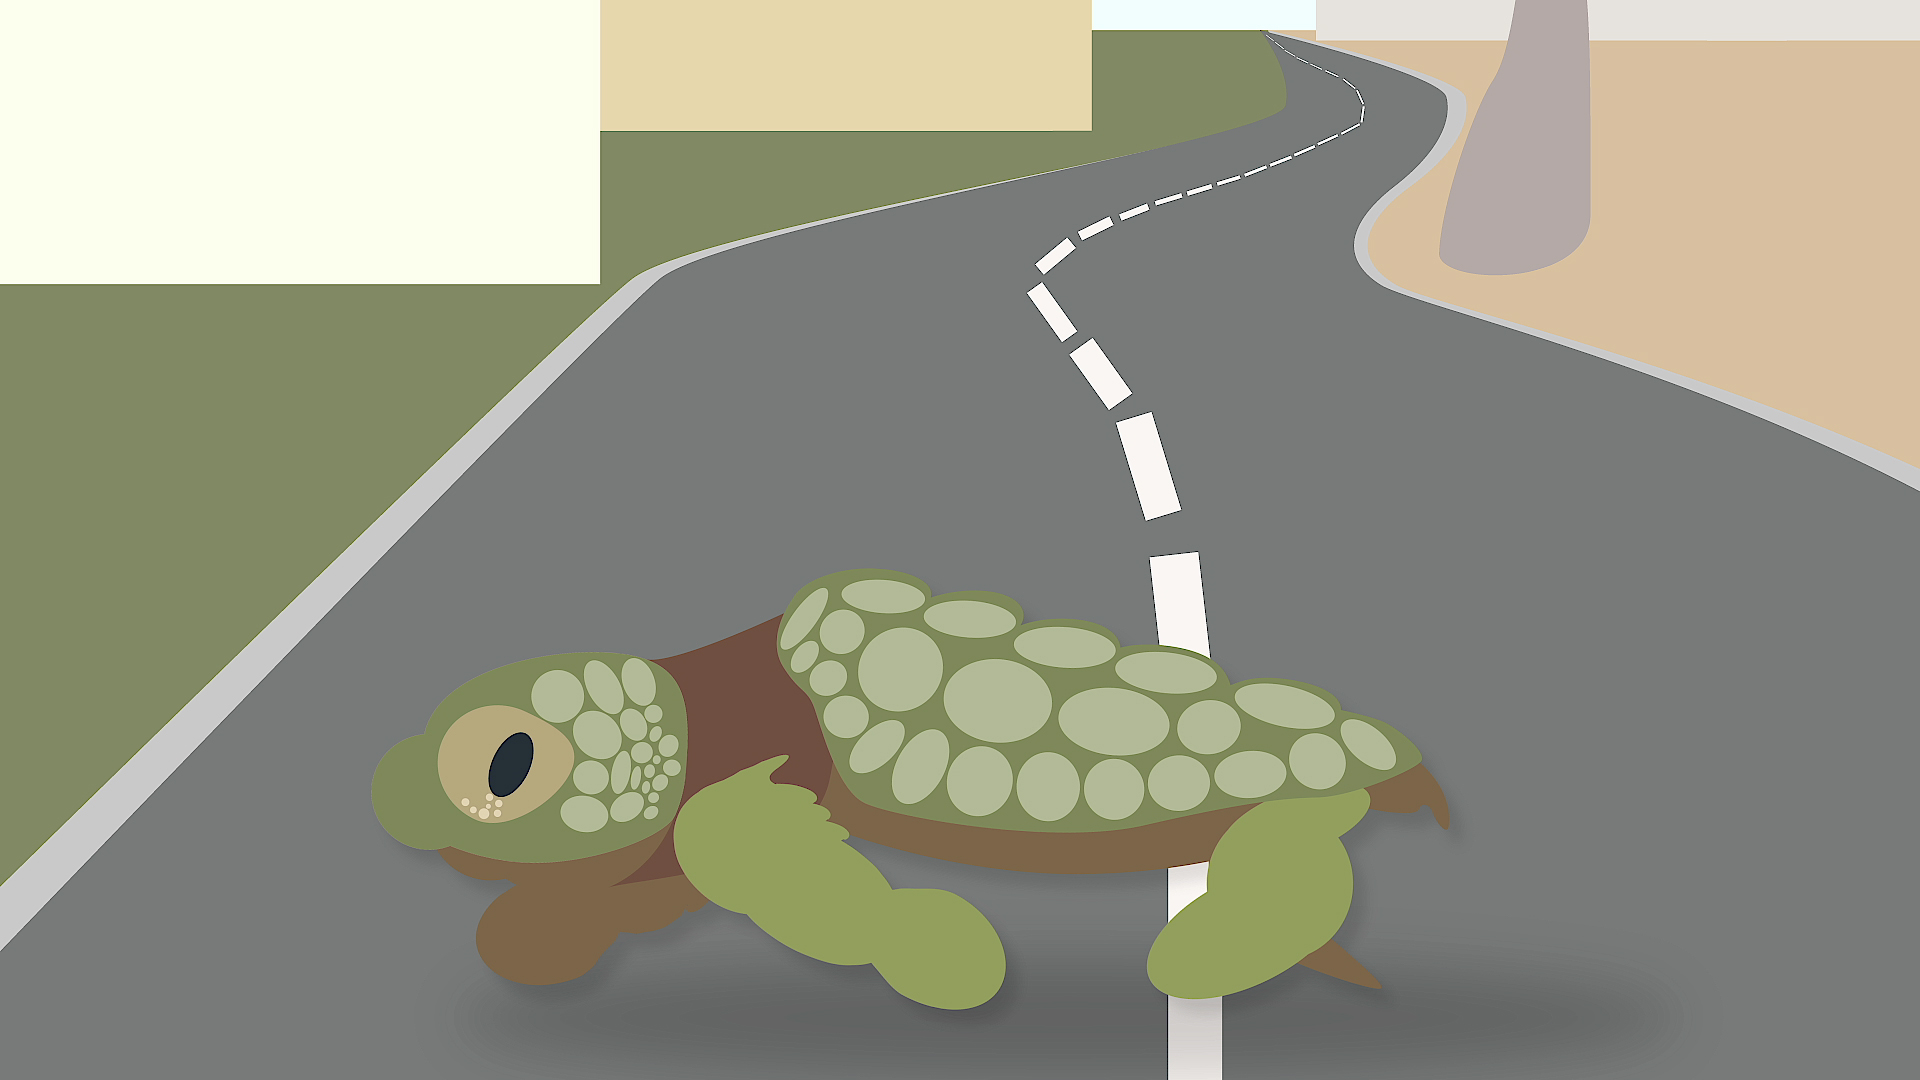 Why did the sea turtle cross the road? Because it got distracted by man-made light and now it's dead.